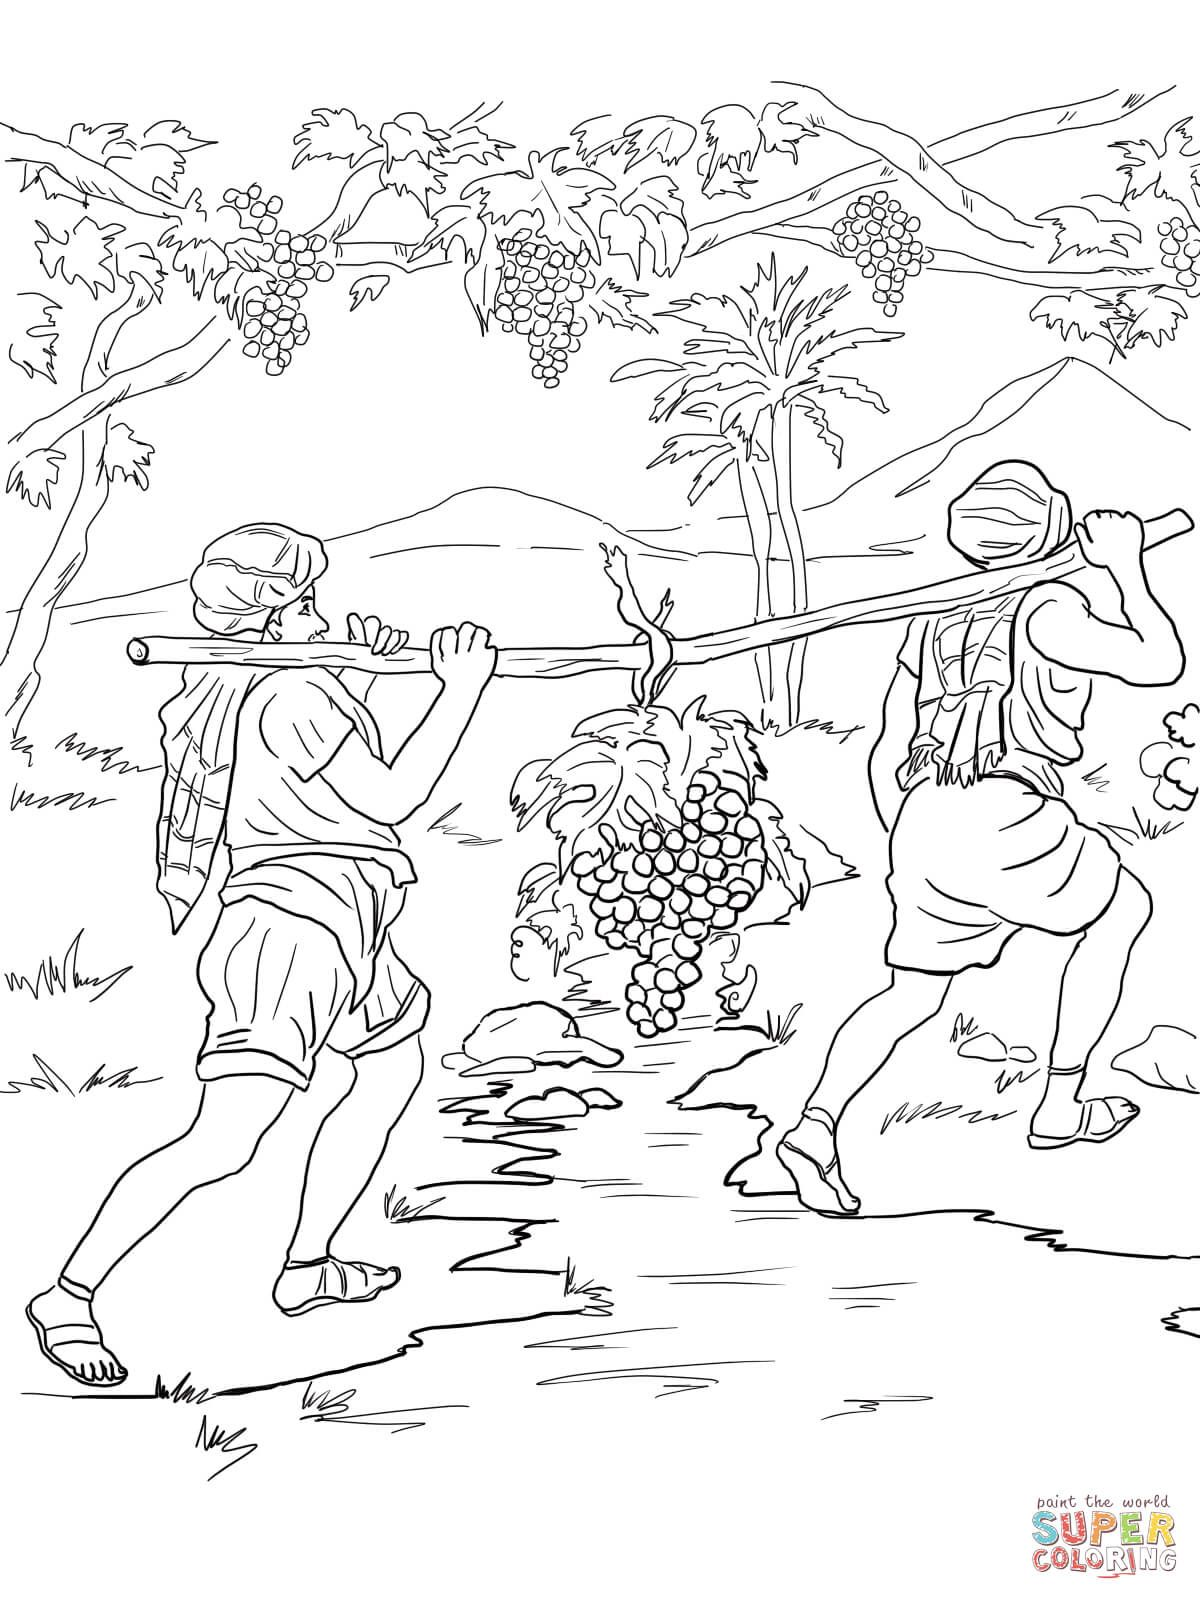 Joshua And Caleb Returning From Canaan Coloring Page From Joshua